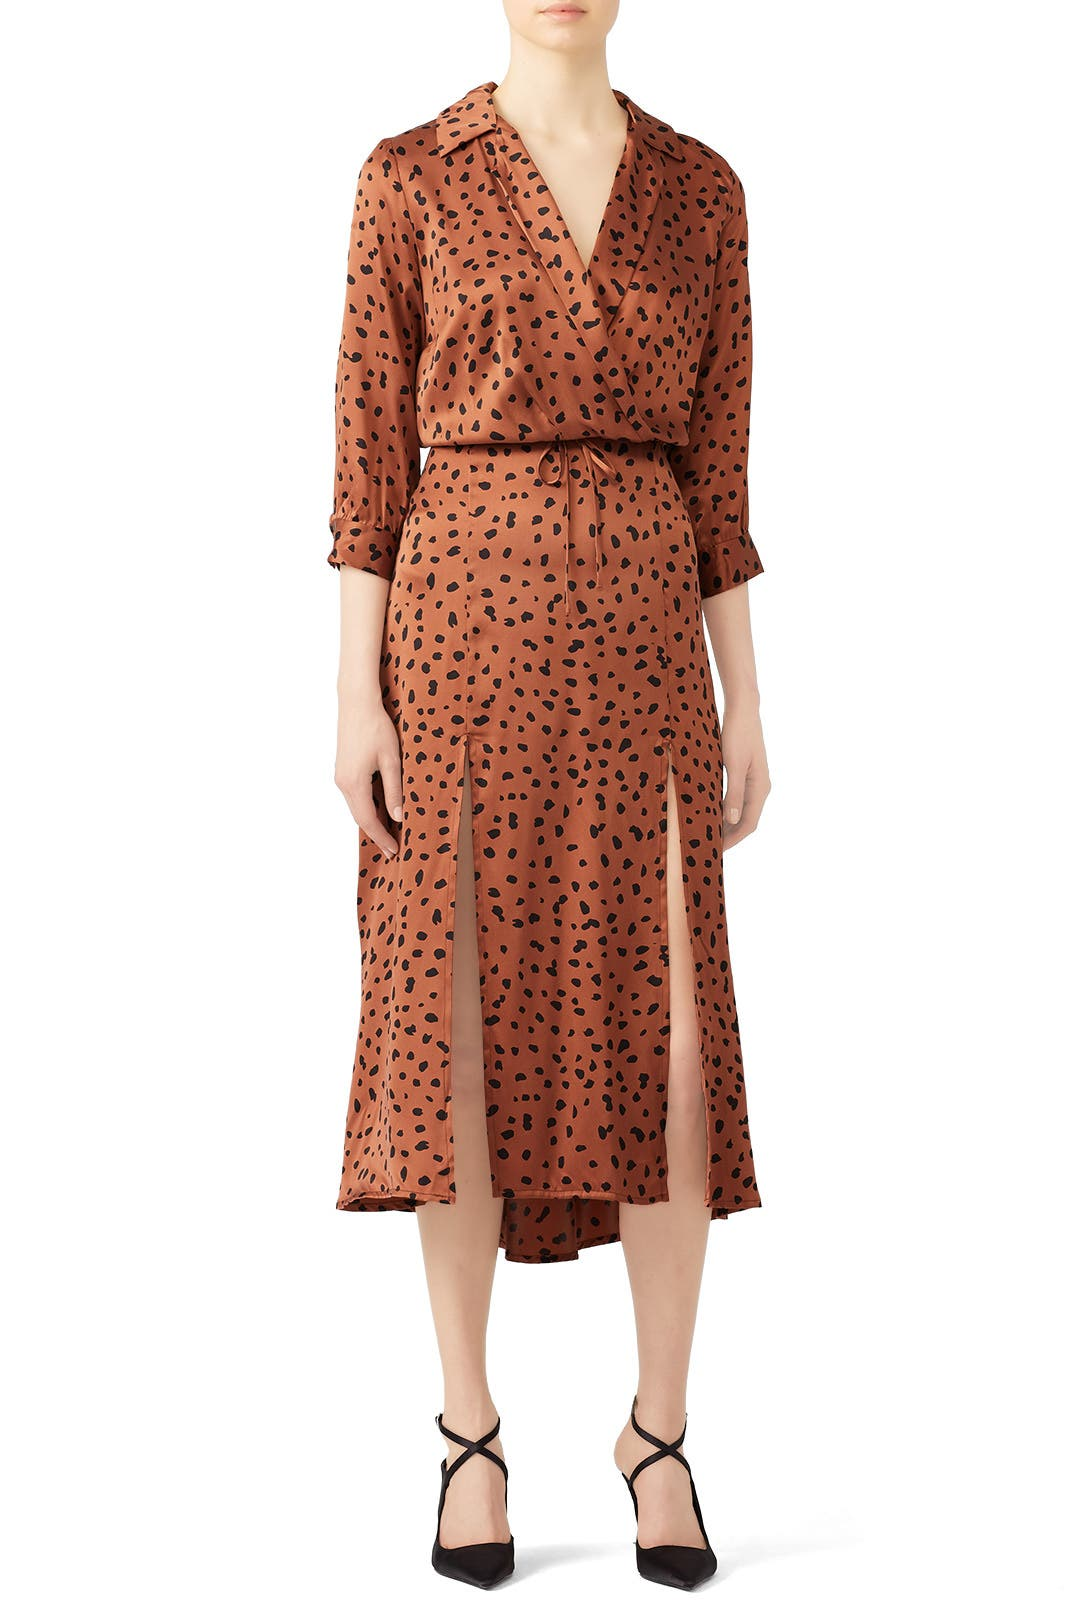 d6700c4c2ae64 Wild Cat Midi Dress by Bec   Bridge for  70 -  80